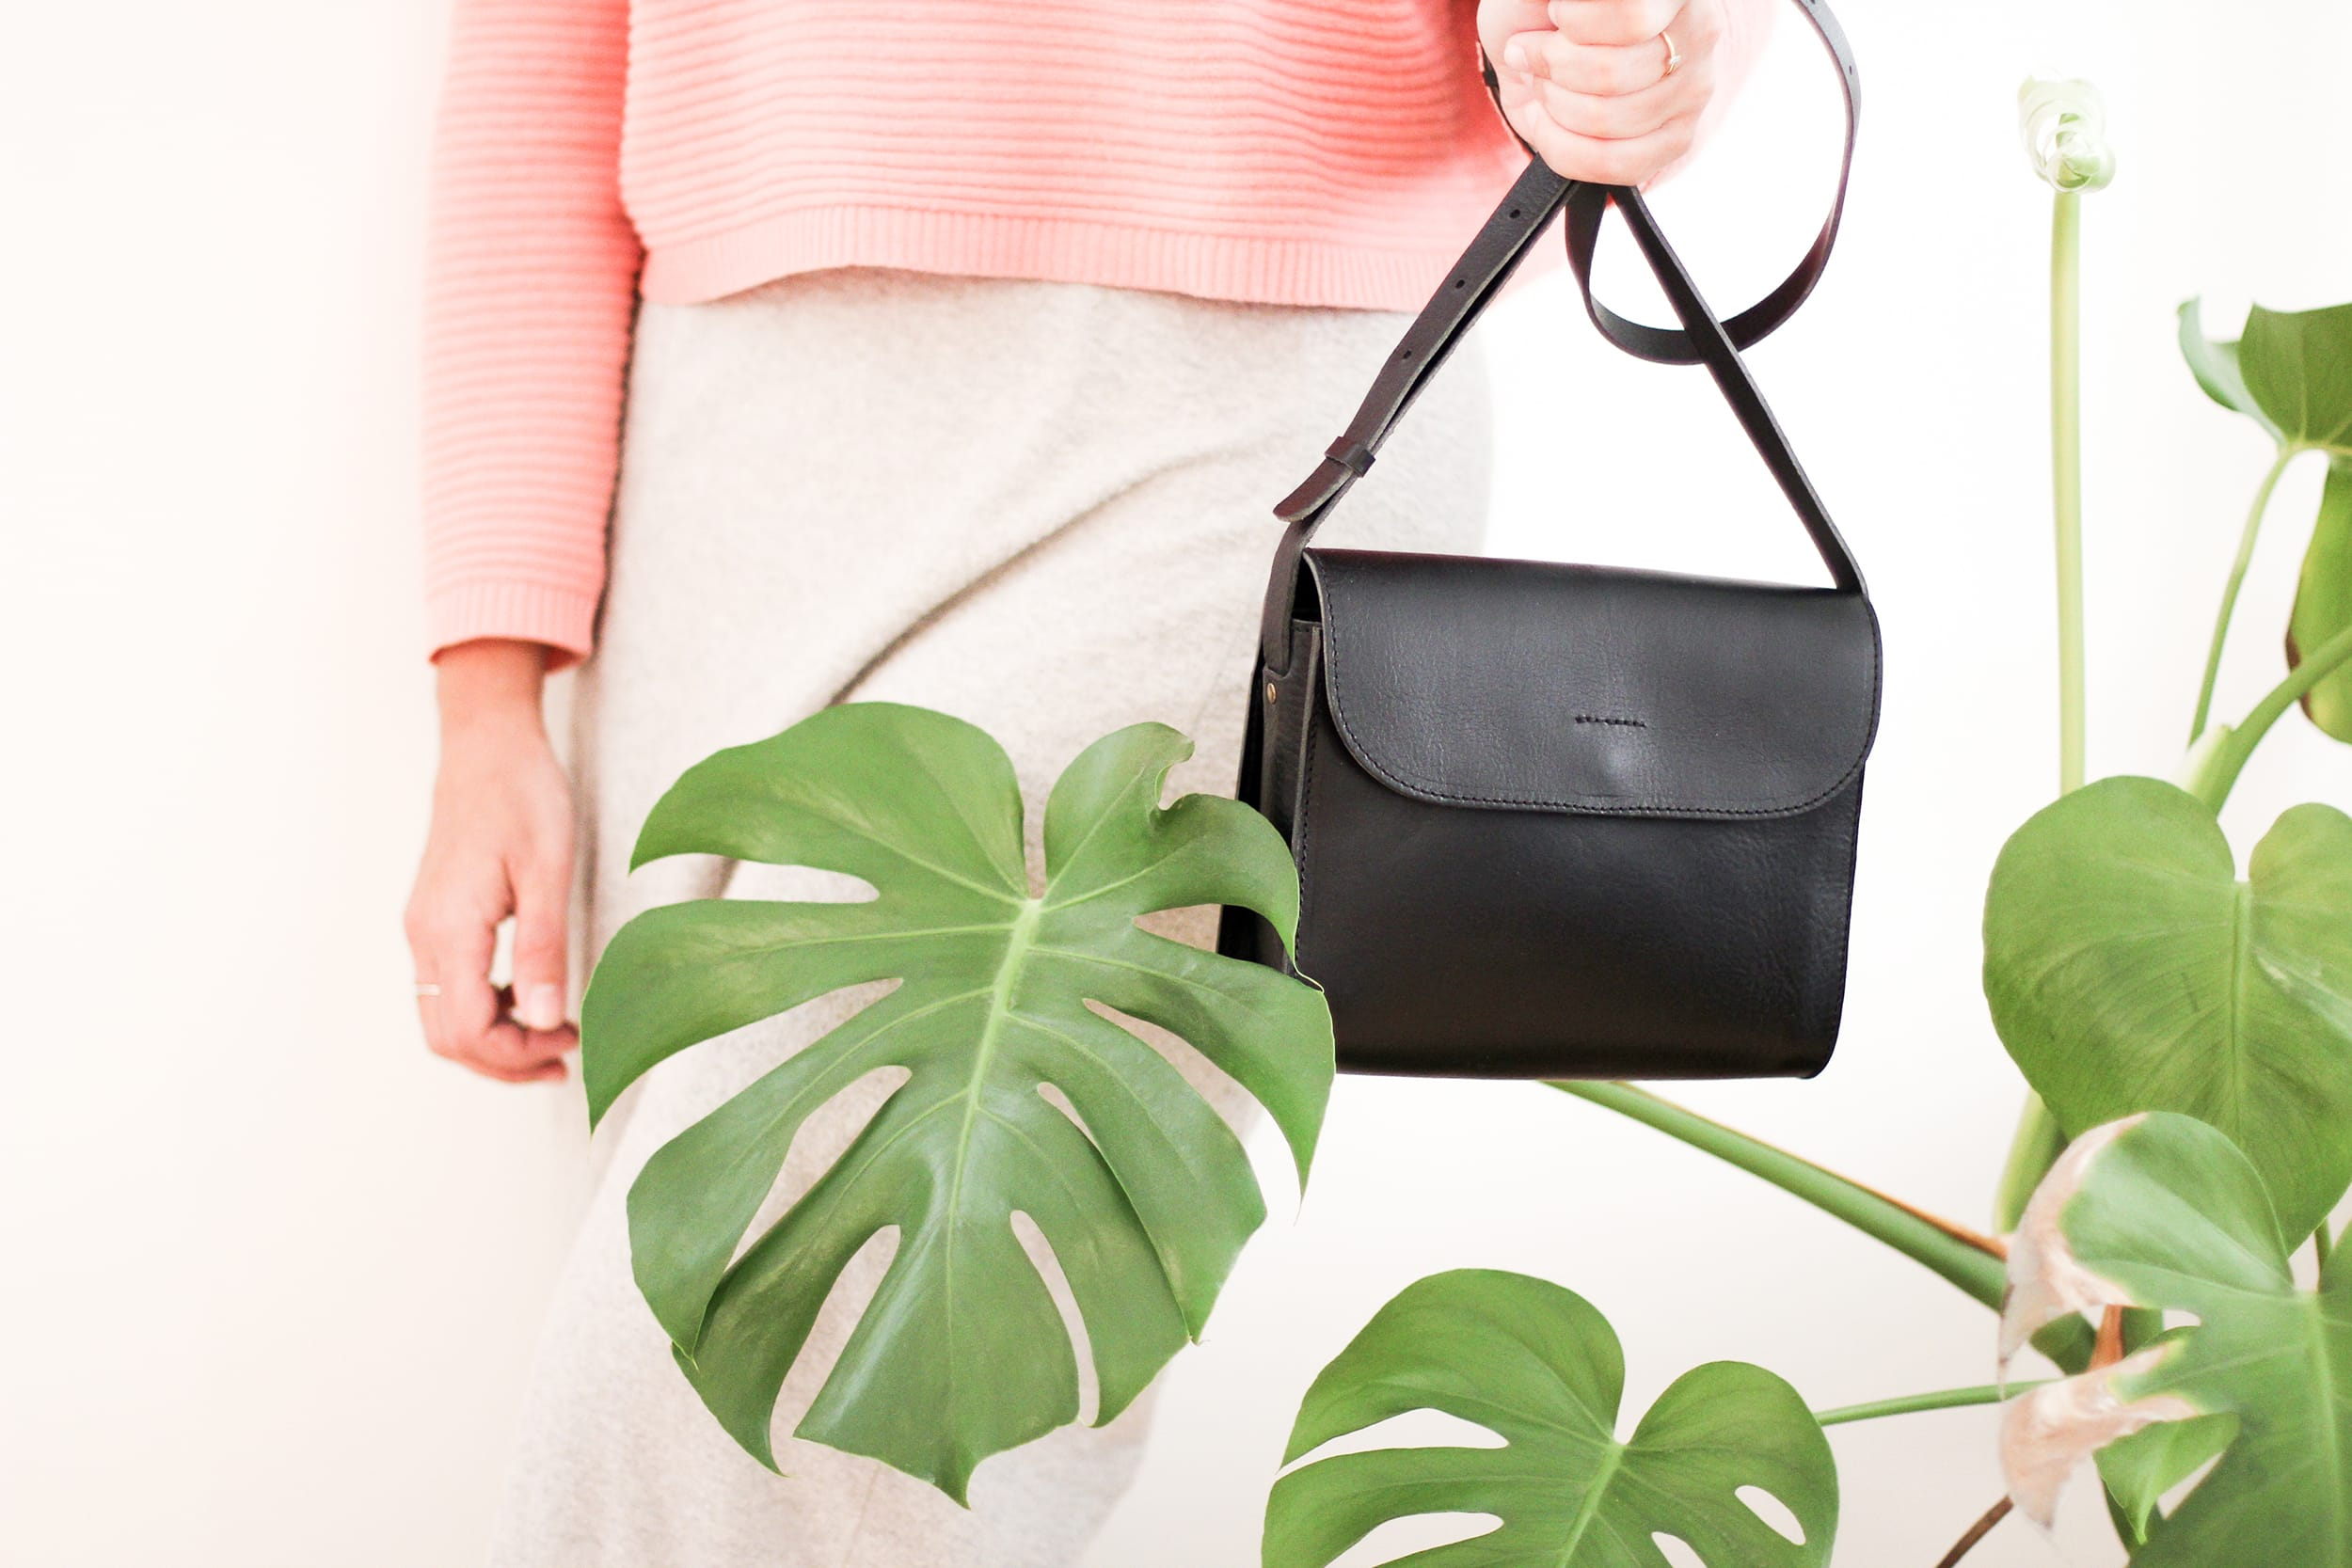 Elvi black handbag in hand